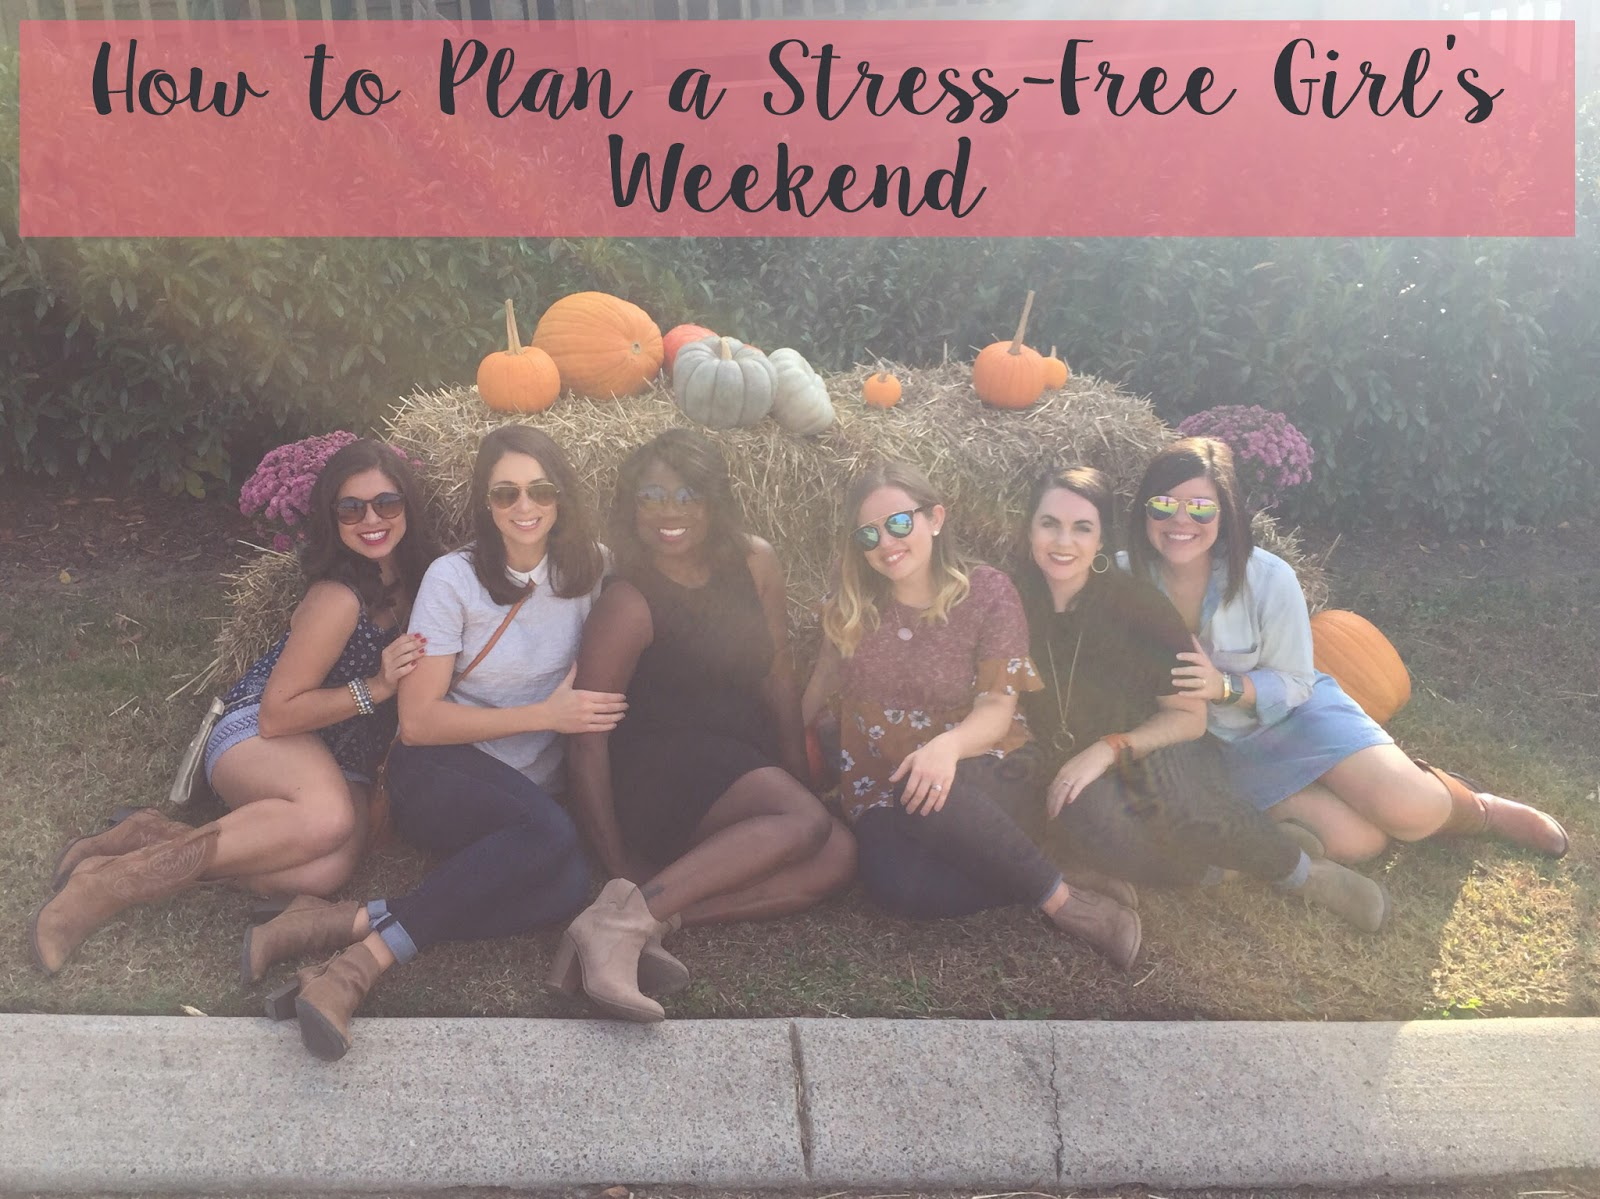 Five Tips for Planning a Stress-Free Girl's Trip